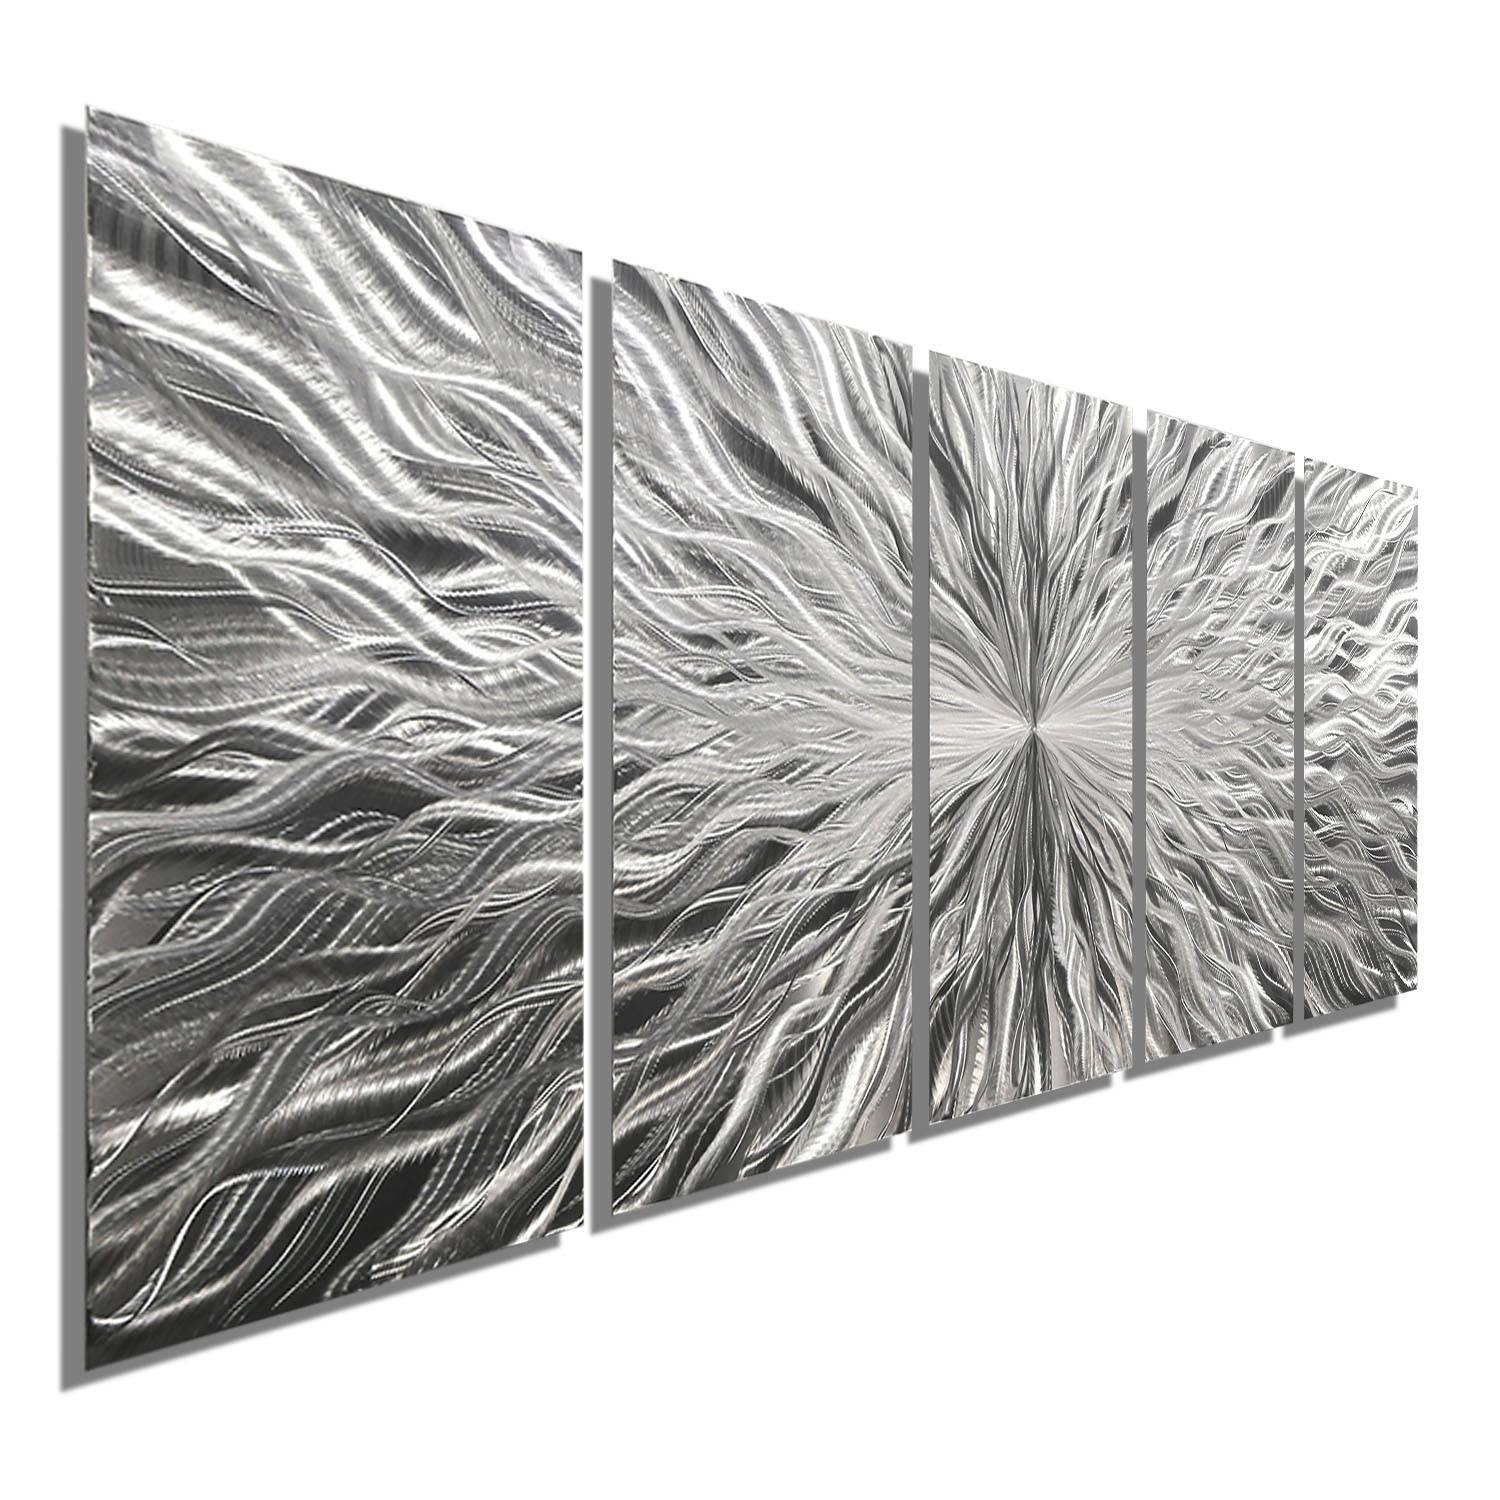 Vortex 5 – Five Panel Silver Modern Abstract Metal Wall Artjon With Most Recent White Metal Wall Art (Gallery 8 of 20)